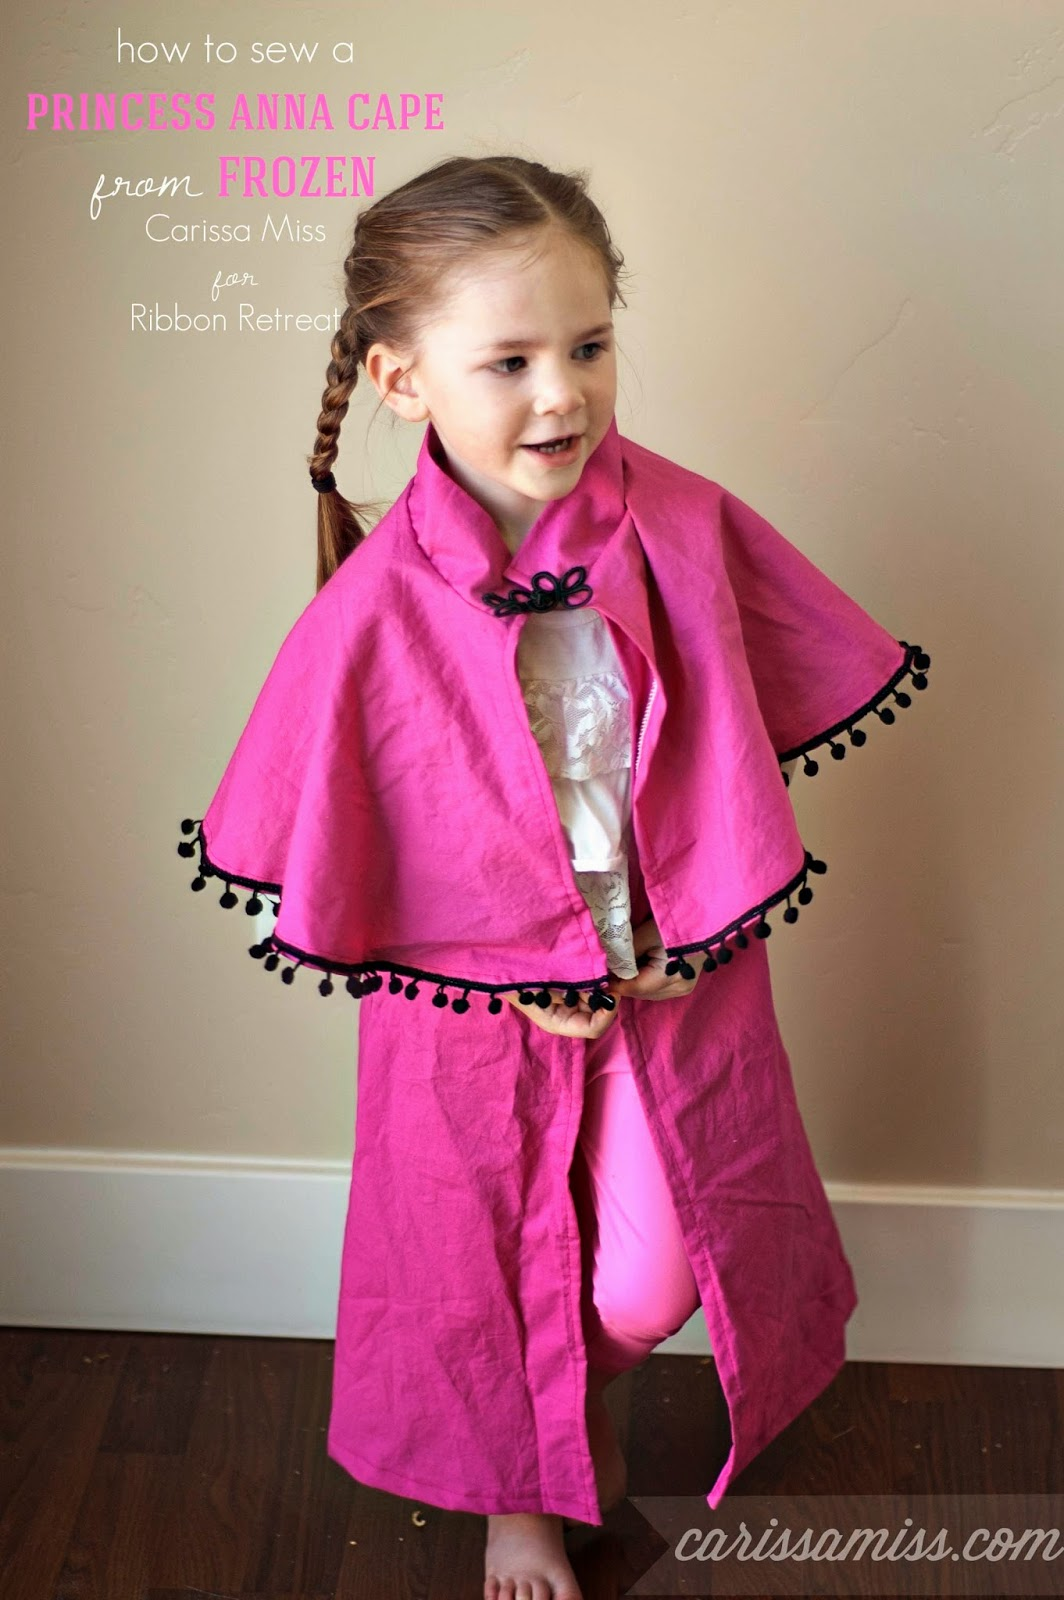 Carissa Miss: Anna Cape Tutorial